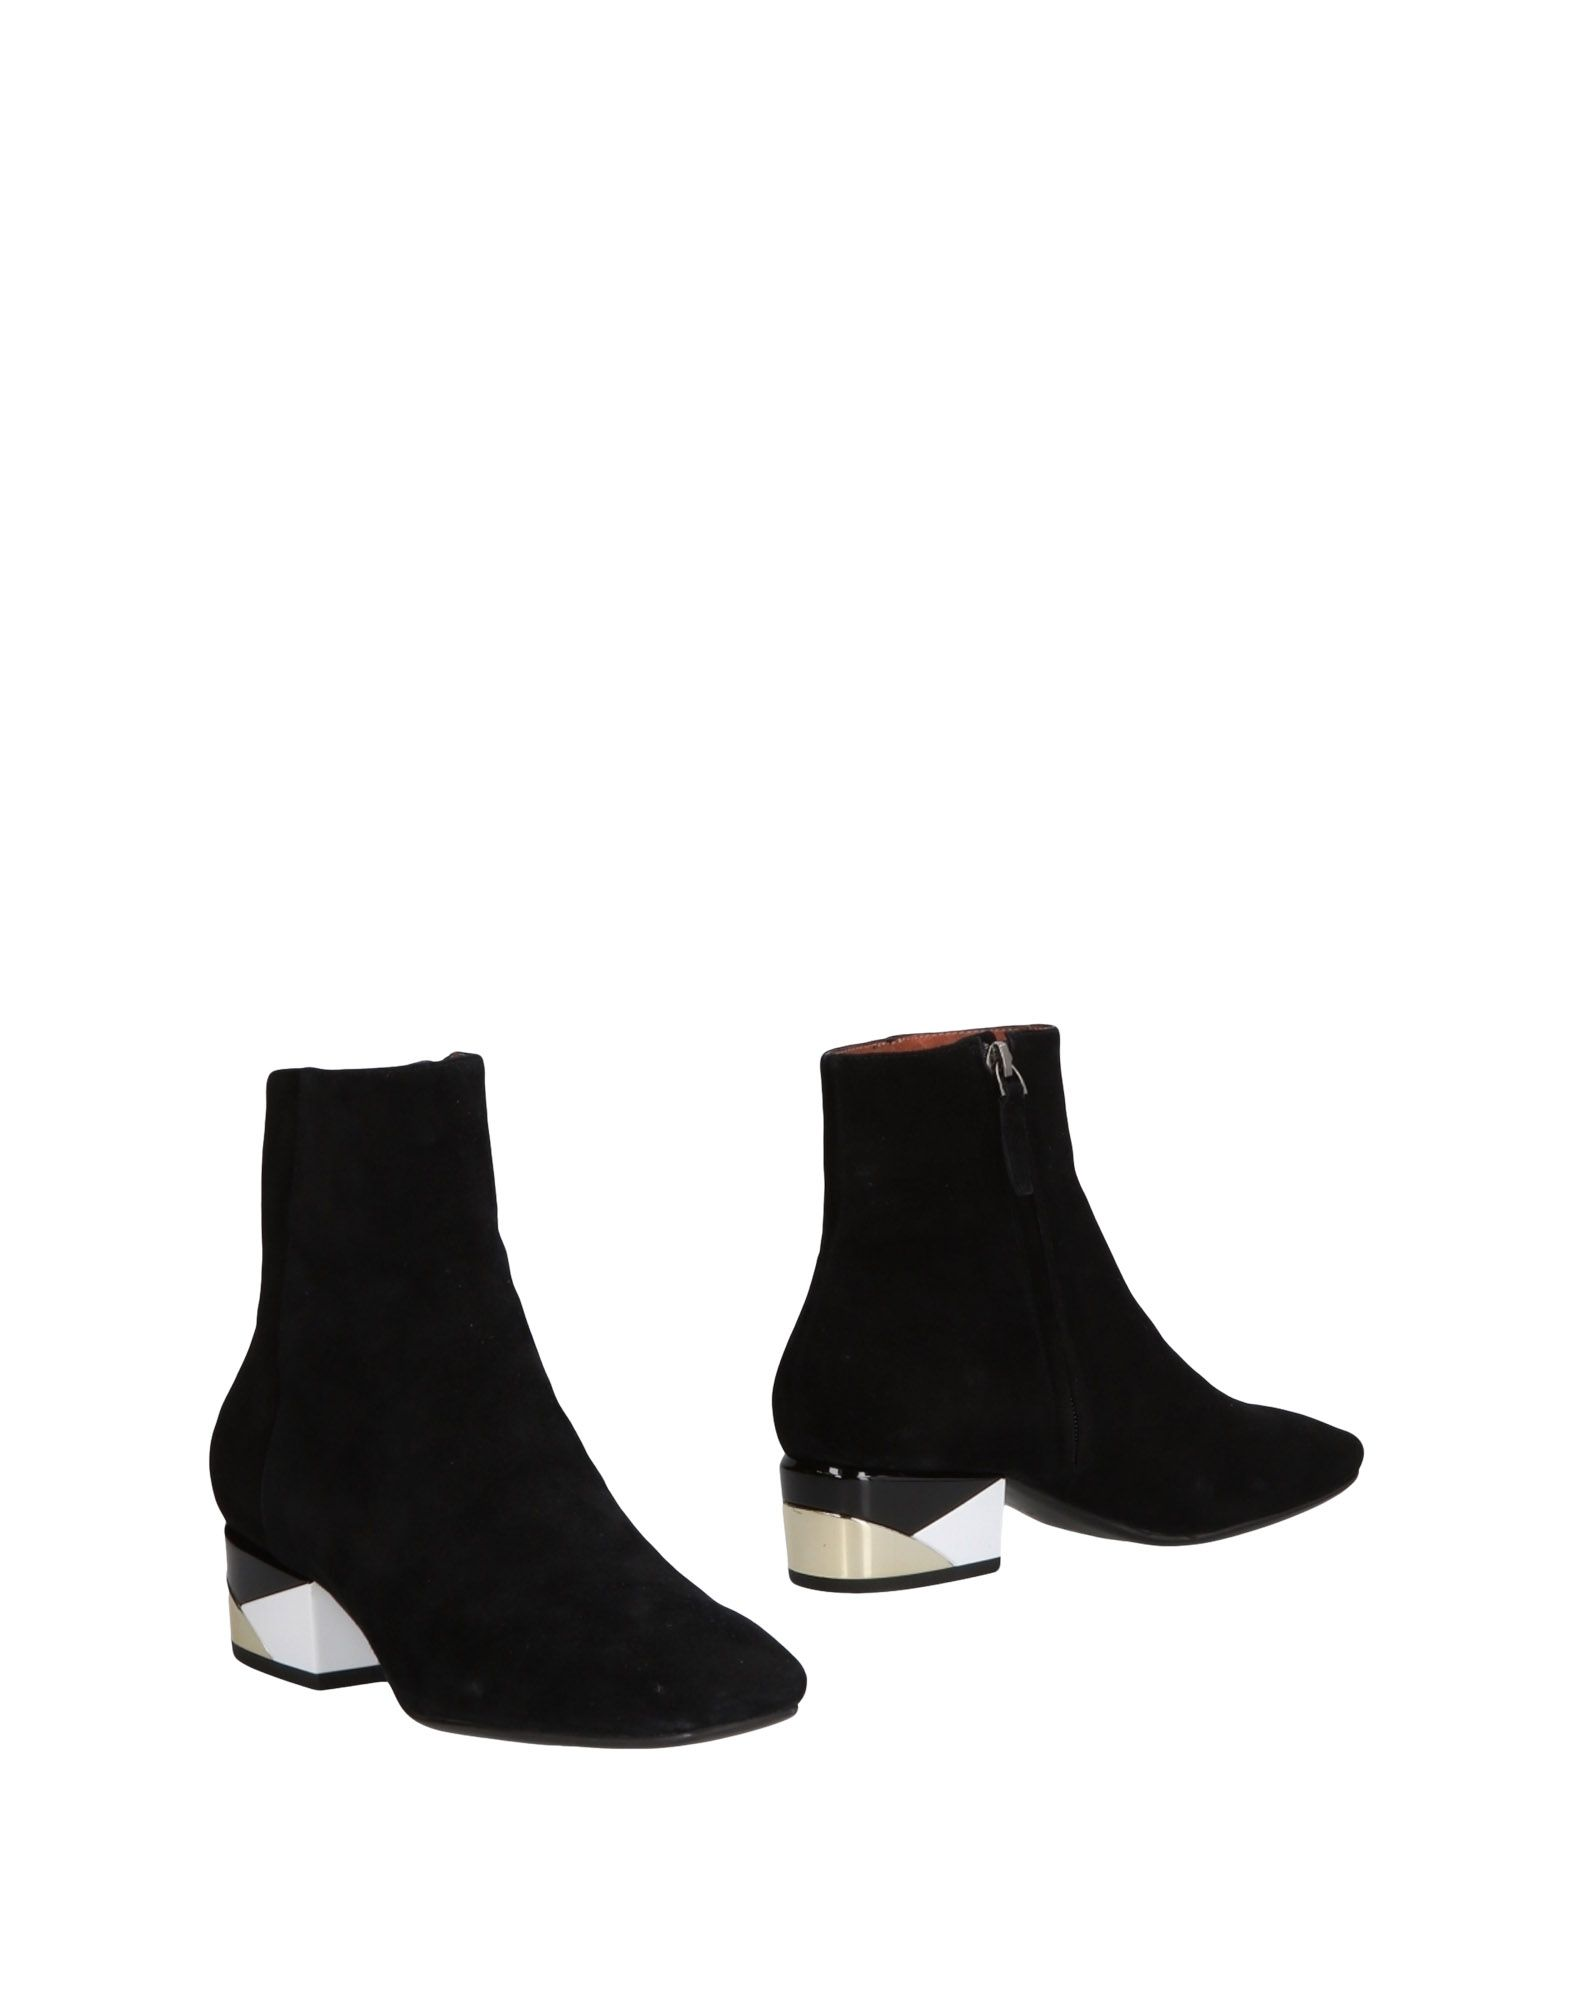 Bottine Lola Cruz Femme - Bottines Lola Cruz Noir Super rabais